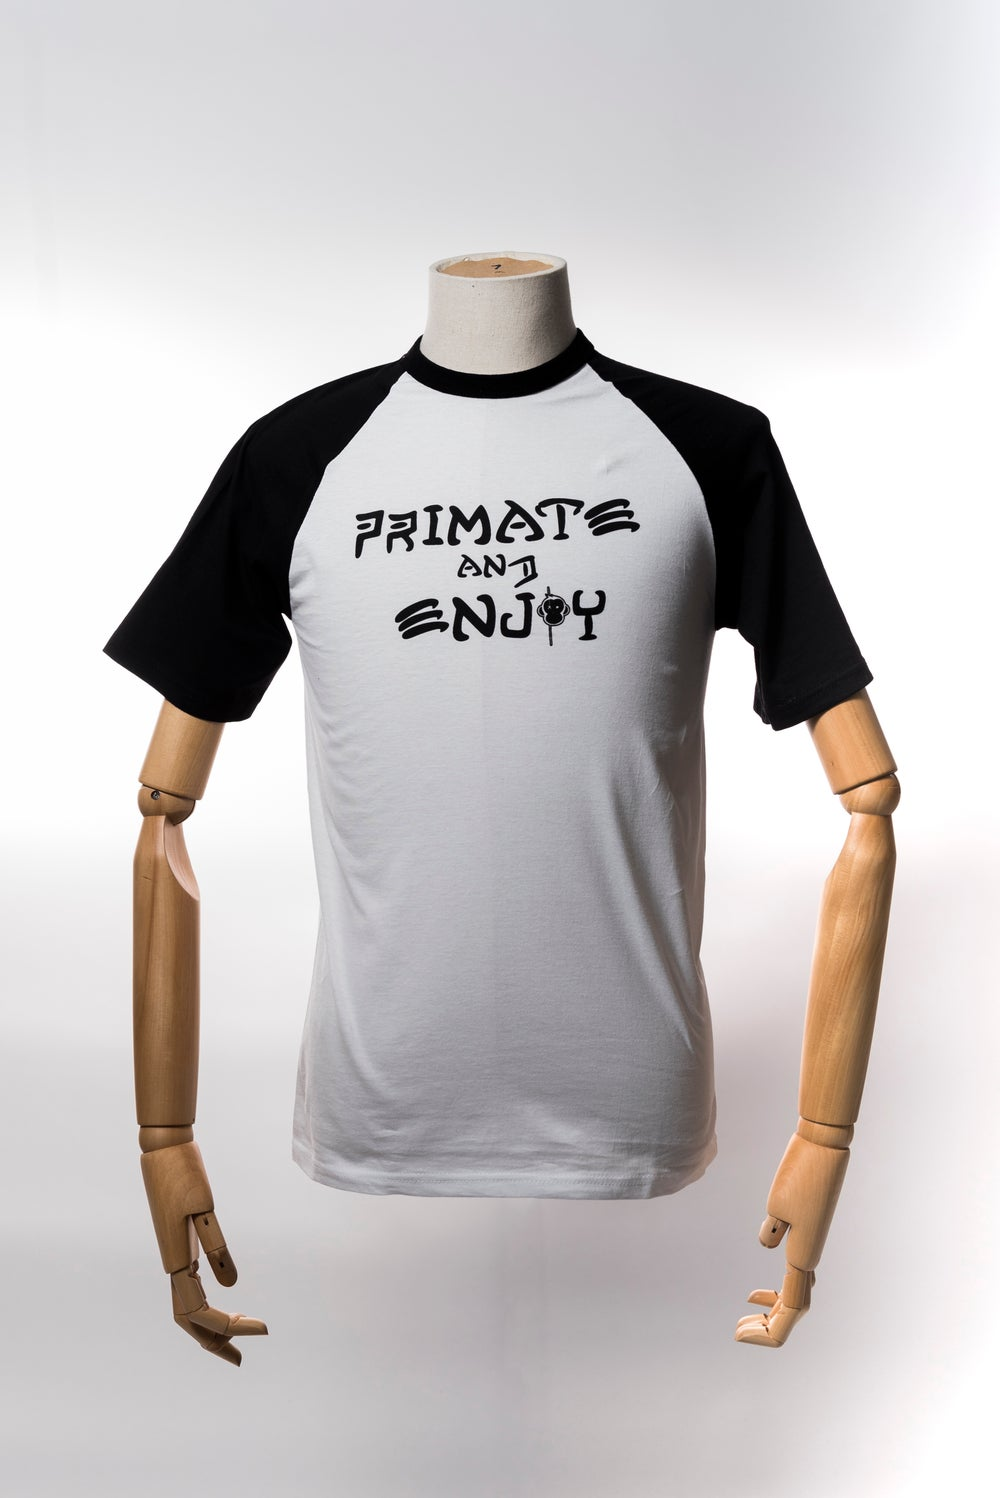 Image of Monkey Climber Primate and Enjoy shortsleeve raglan I Black & White